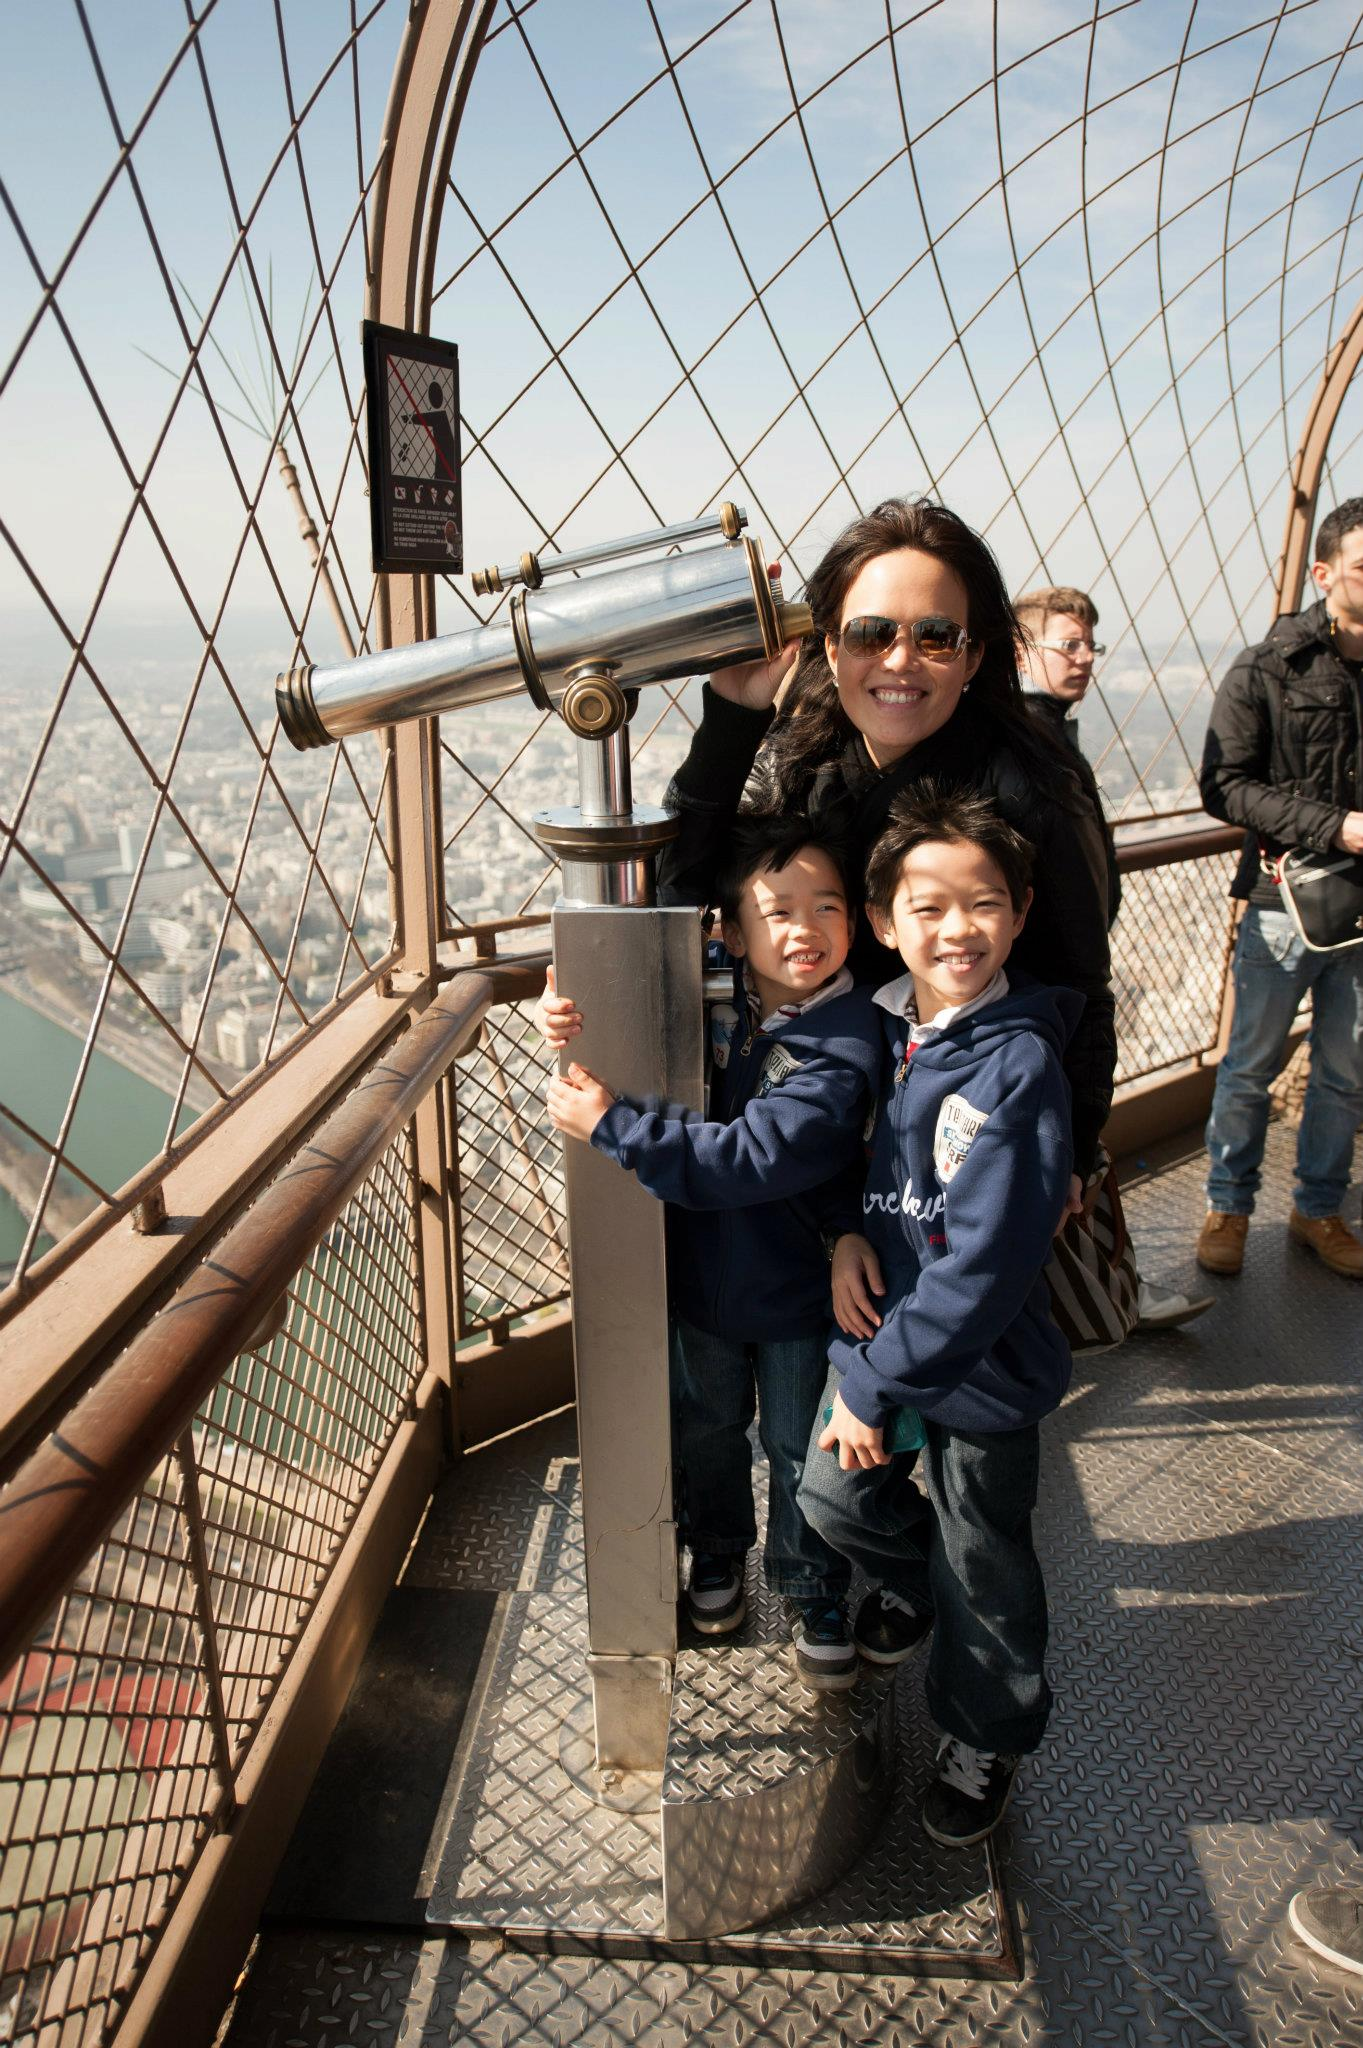 On the Eiffel Tower...a windy day!